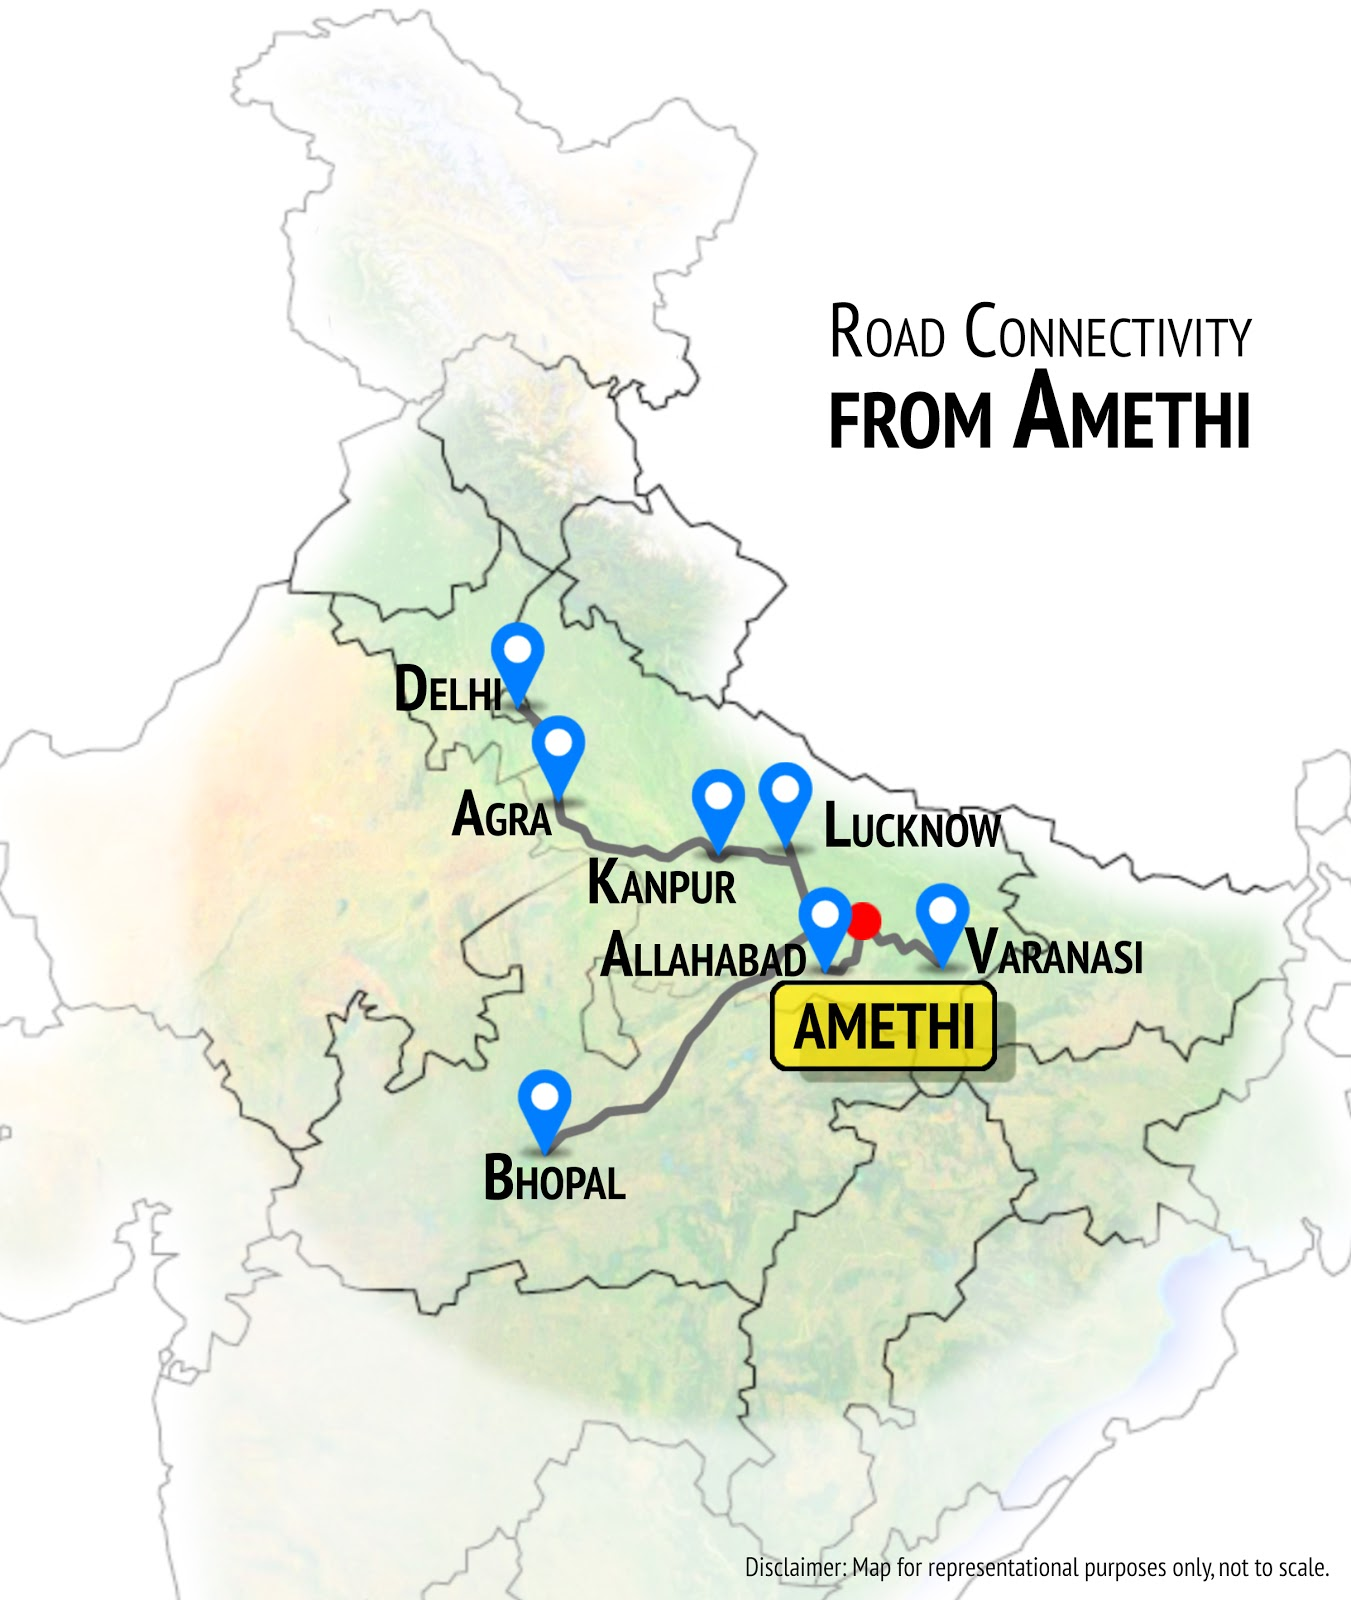 Amethi road links Connectivity